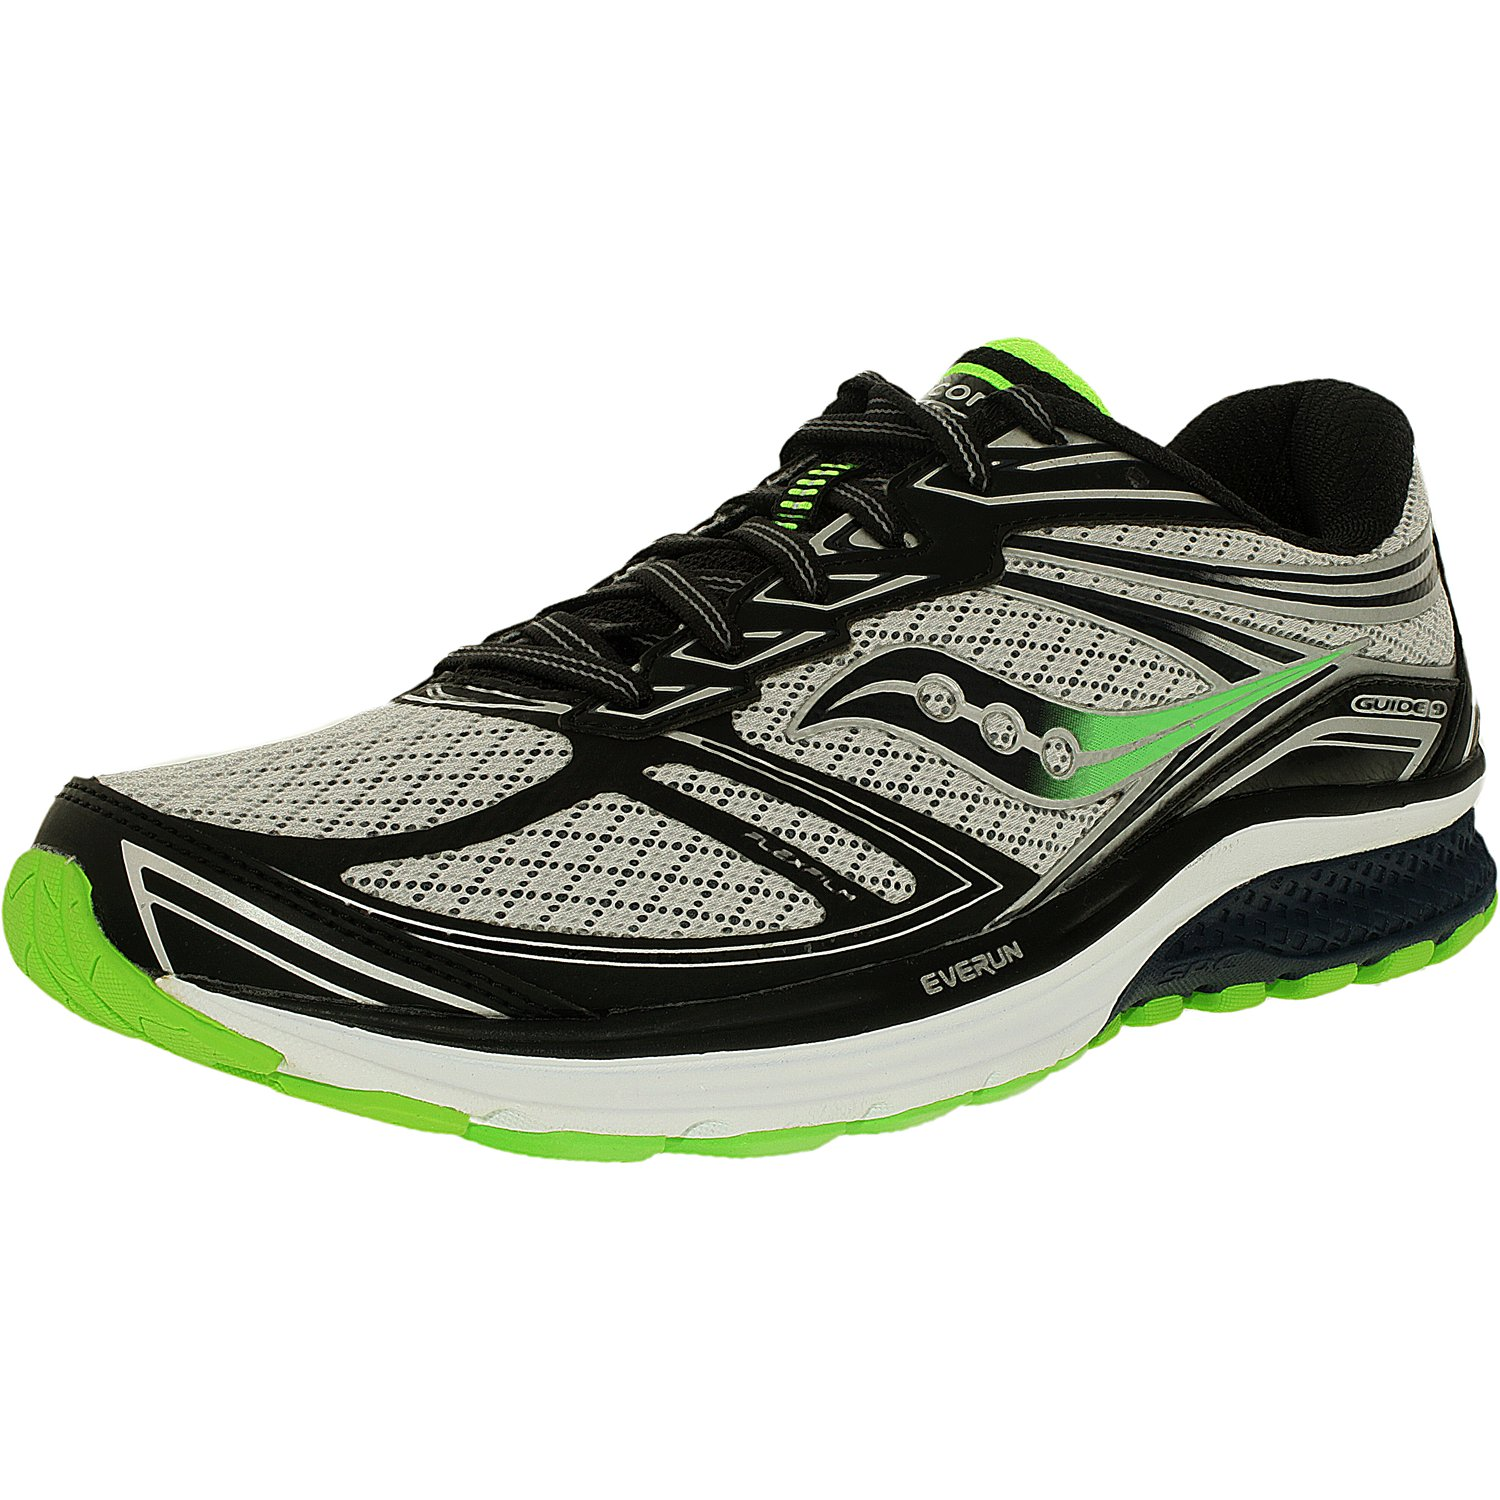 Saucony Men's Guide 9 Blue Slime Black Ankle-High Nylon Running Shoe 11W by Saucony